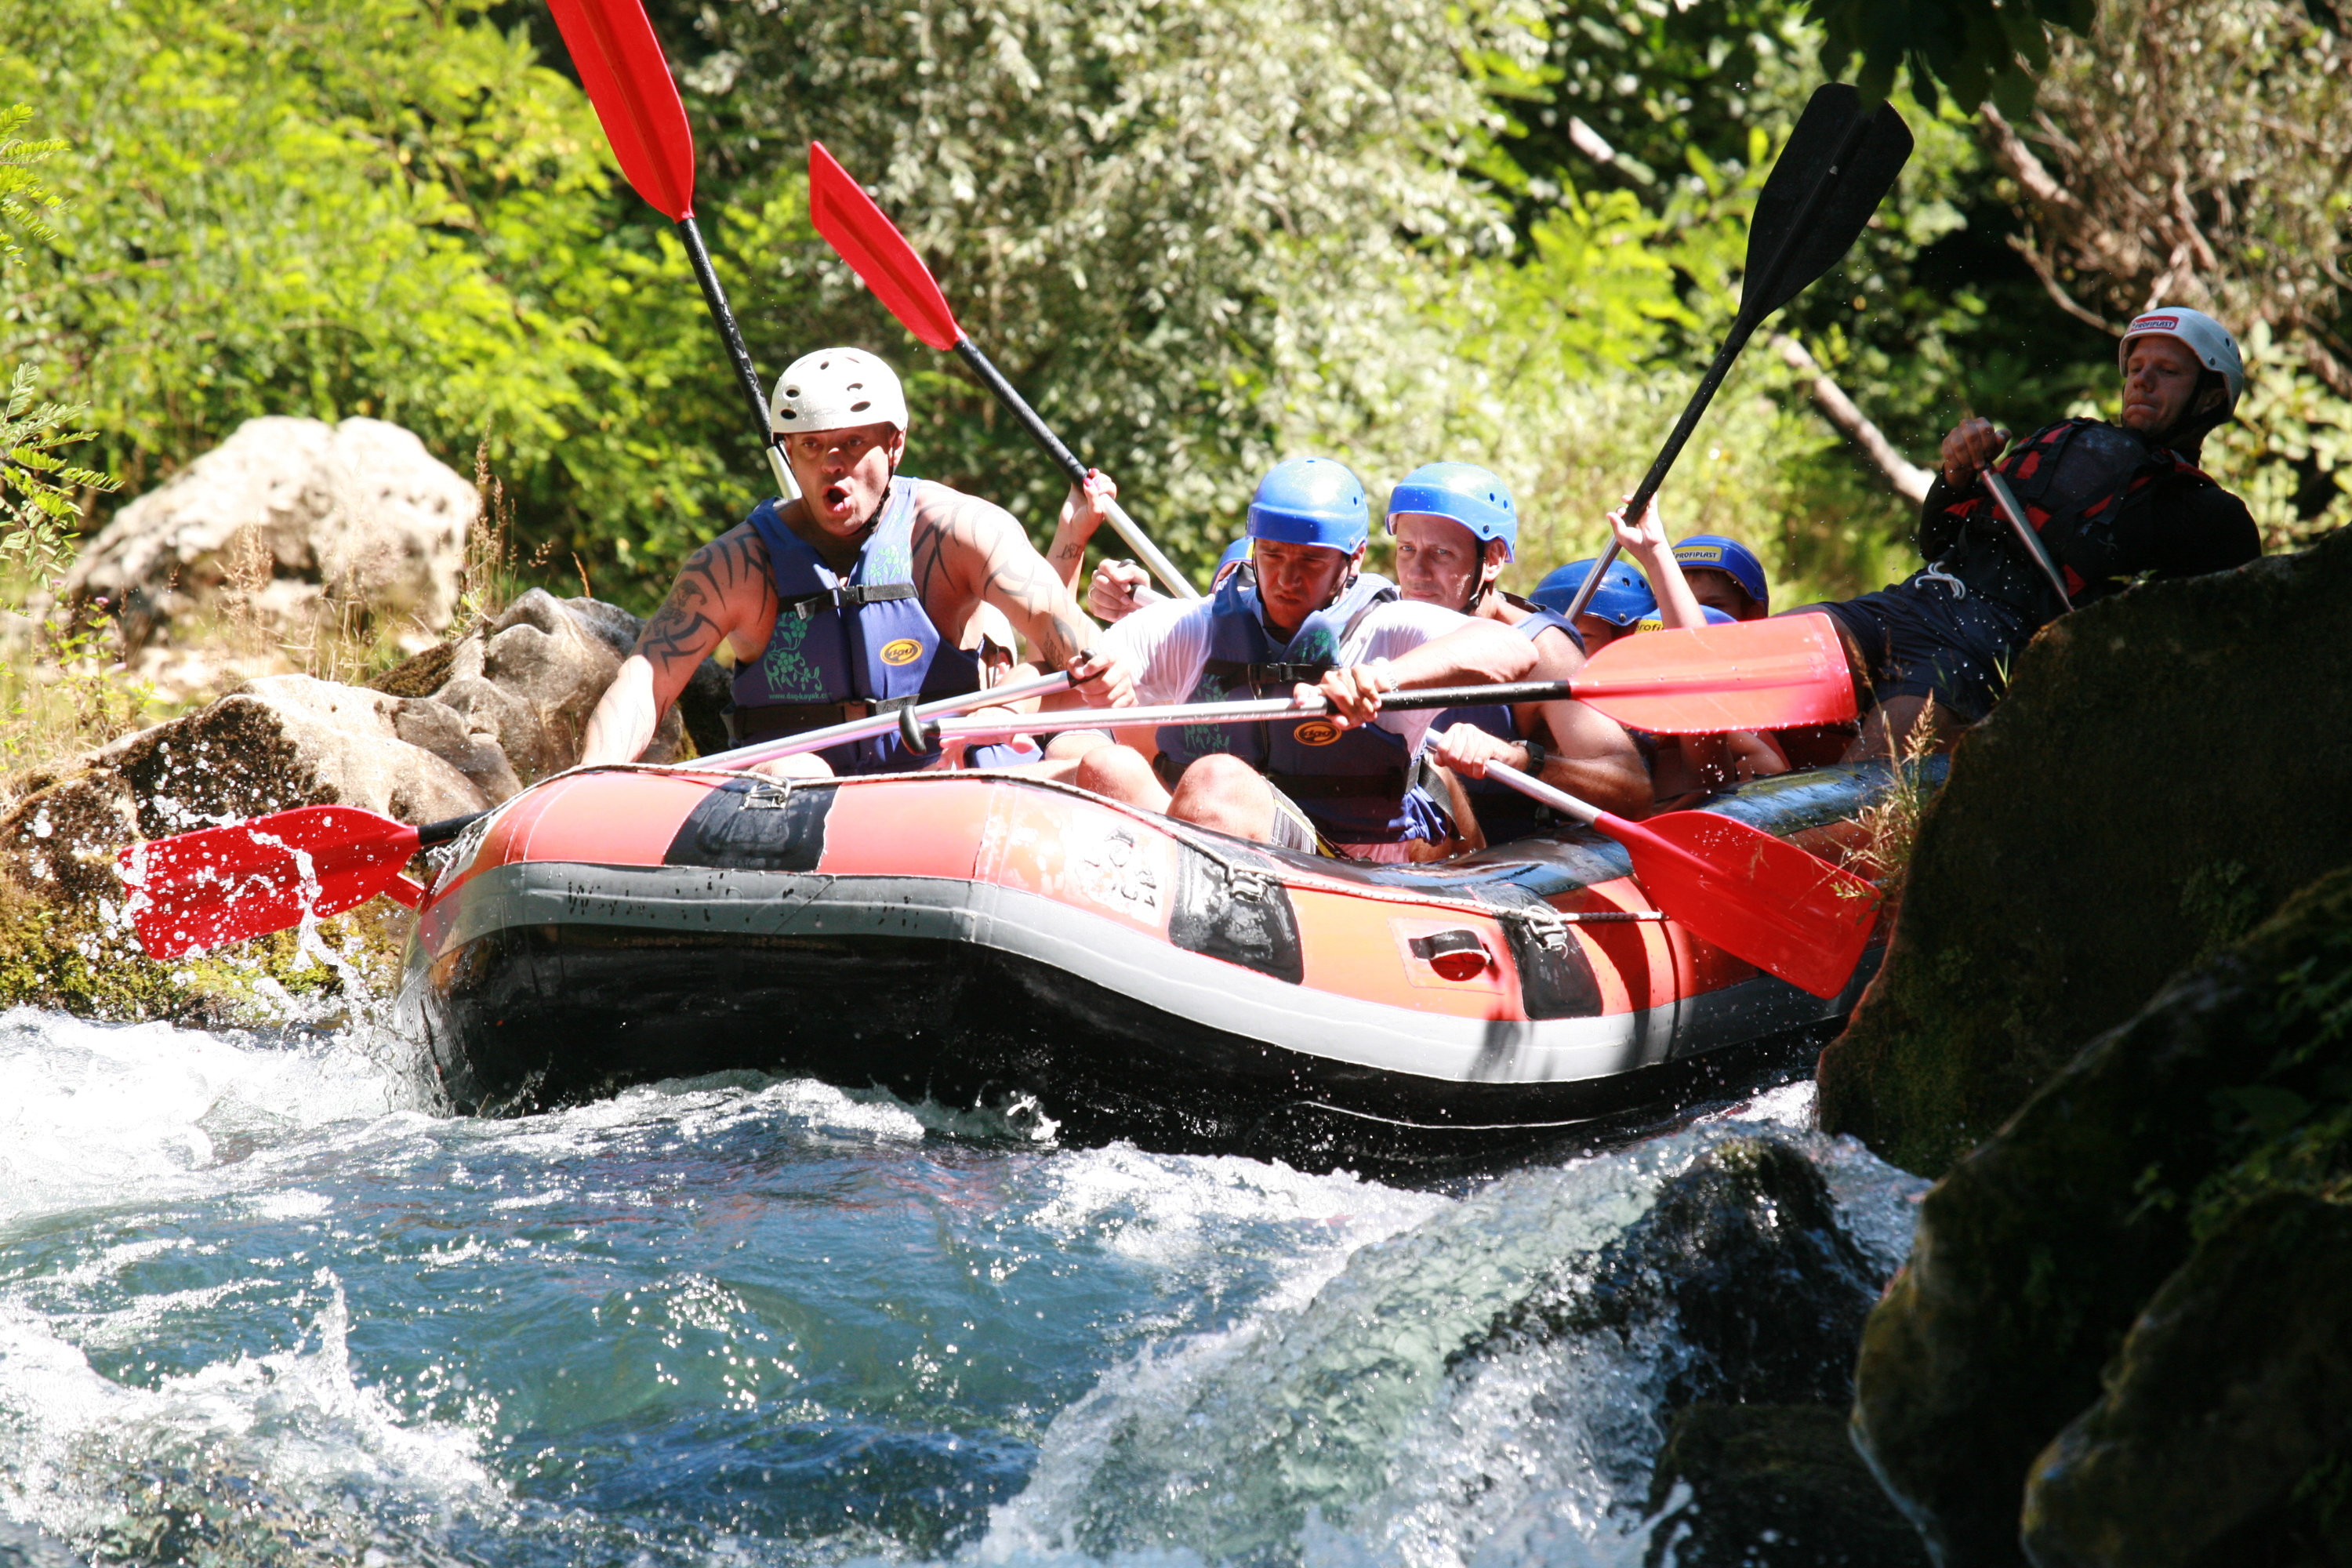 Splash about on a rafting adventure